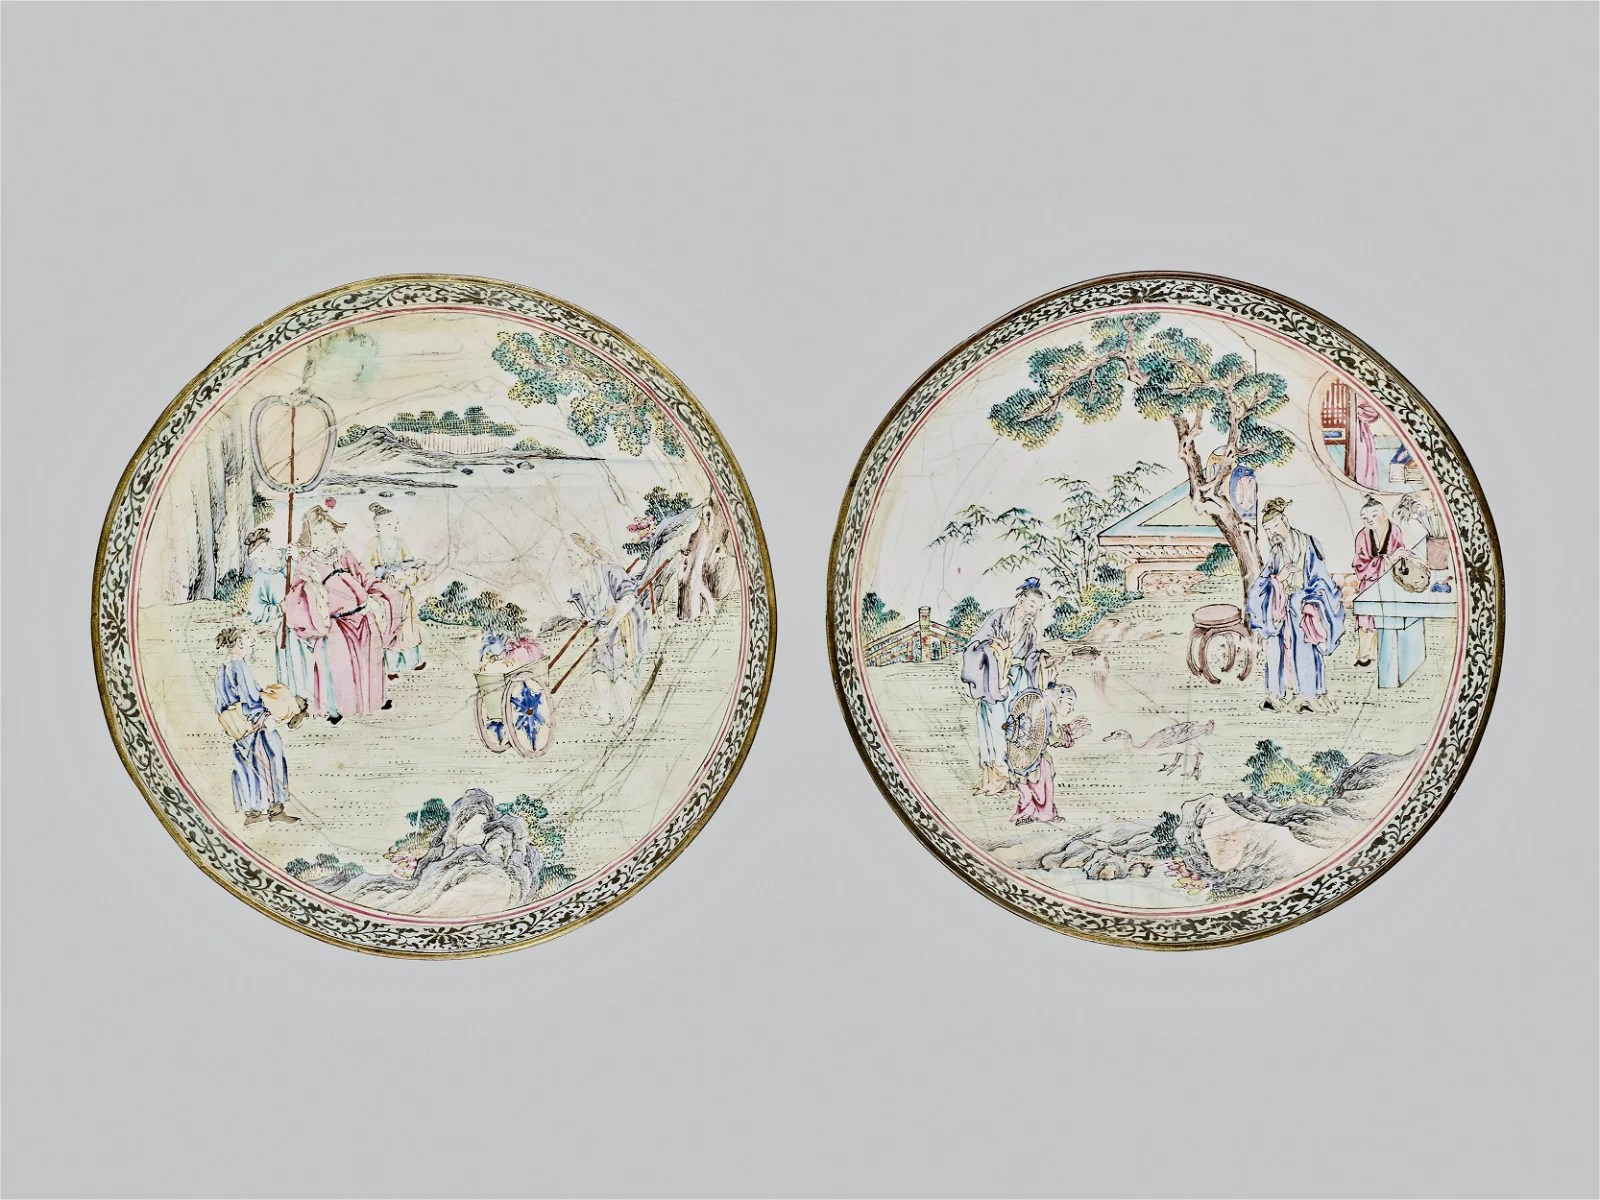 A PAIR CANTON ENAMEL PLATES WITH COURT SCENES,QING